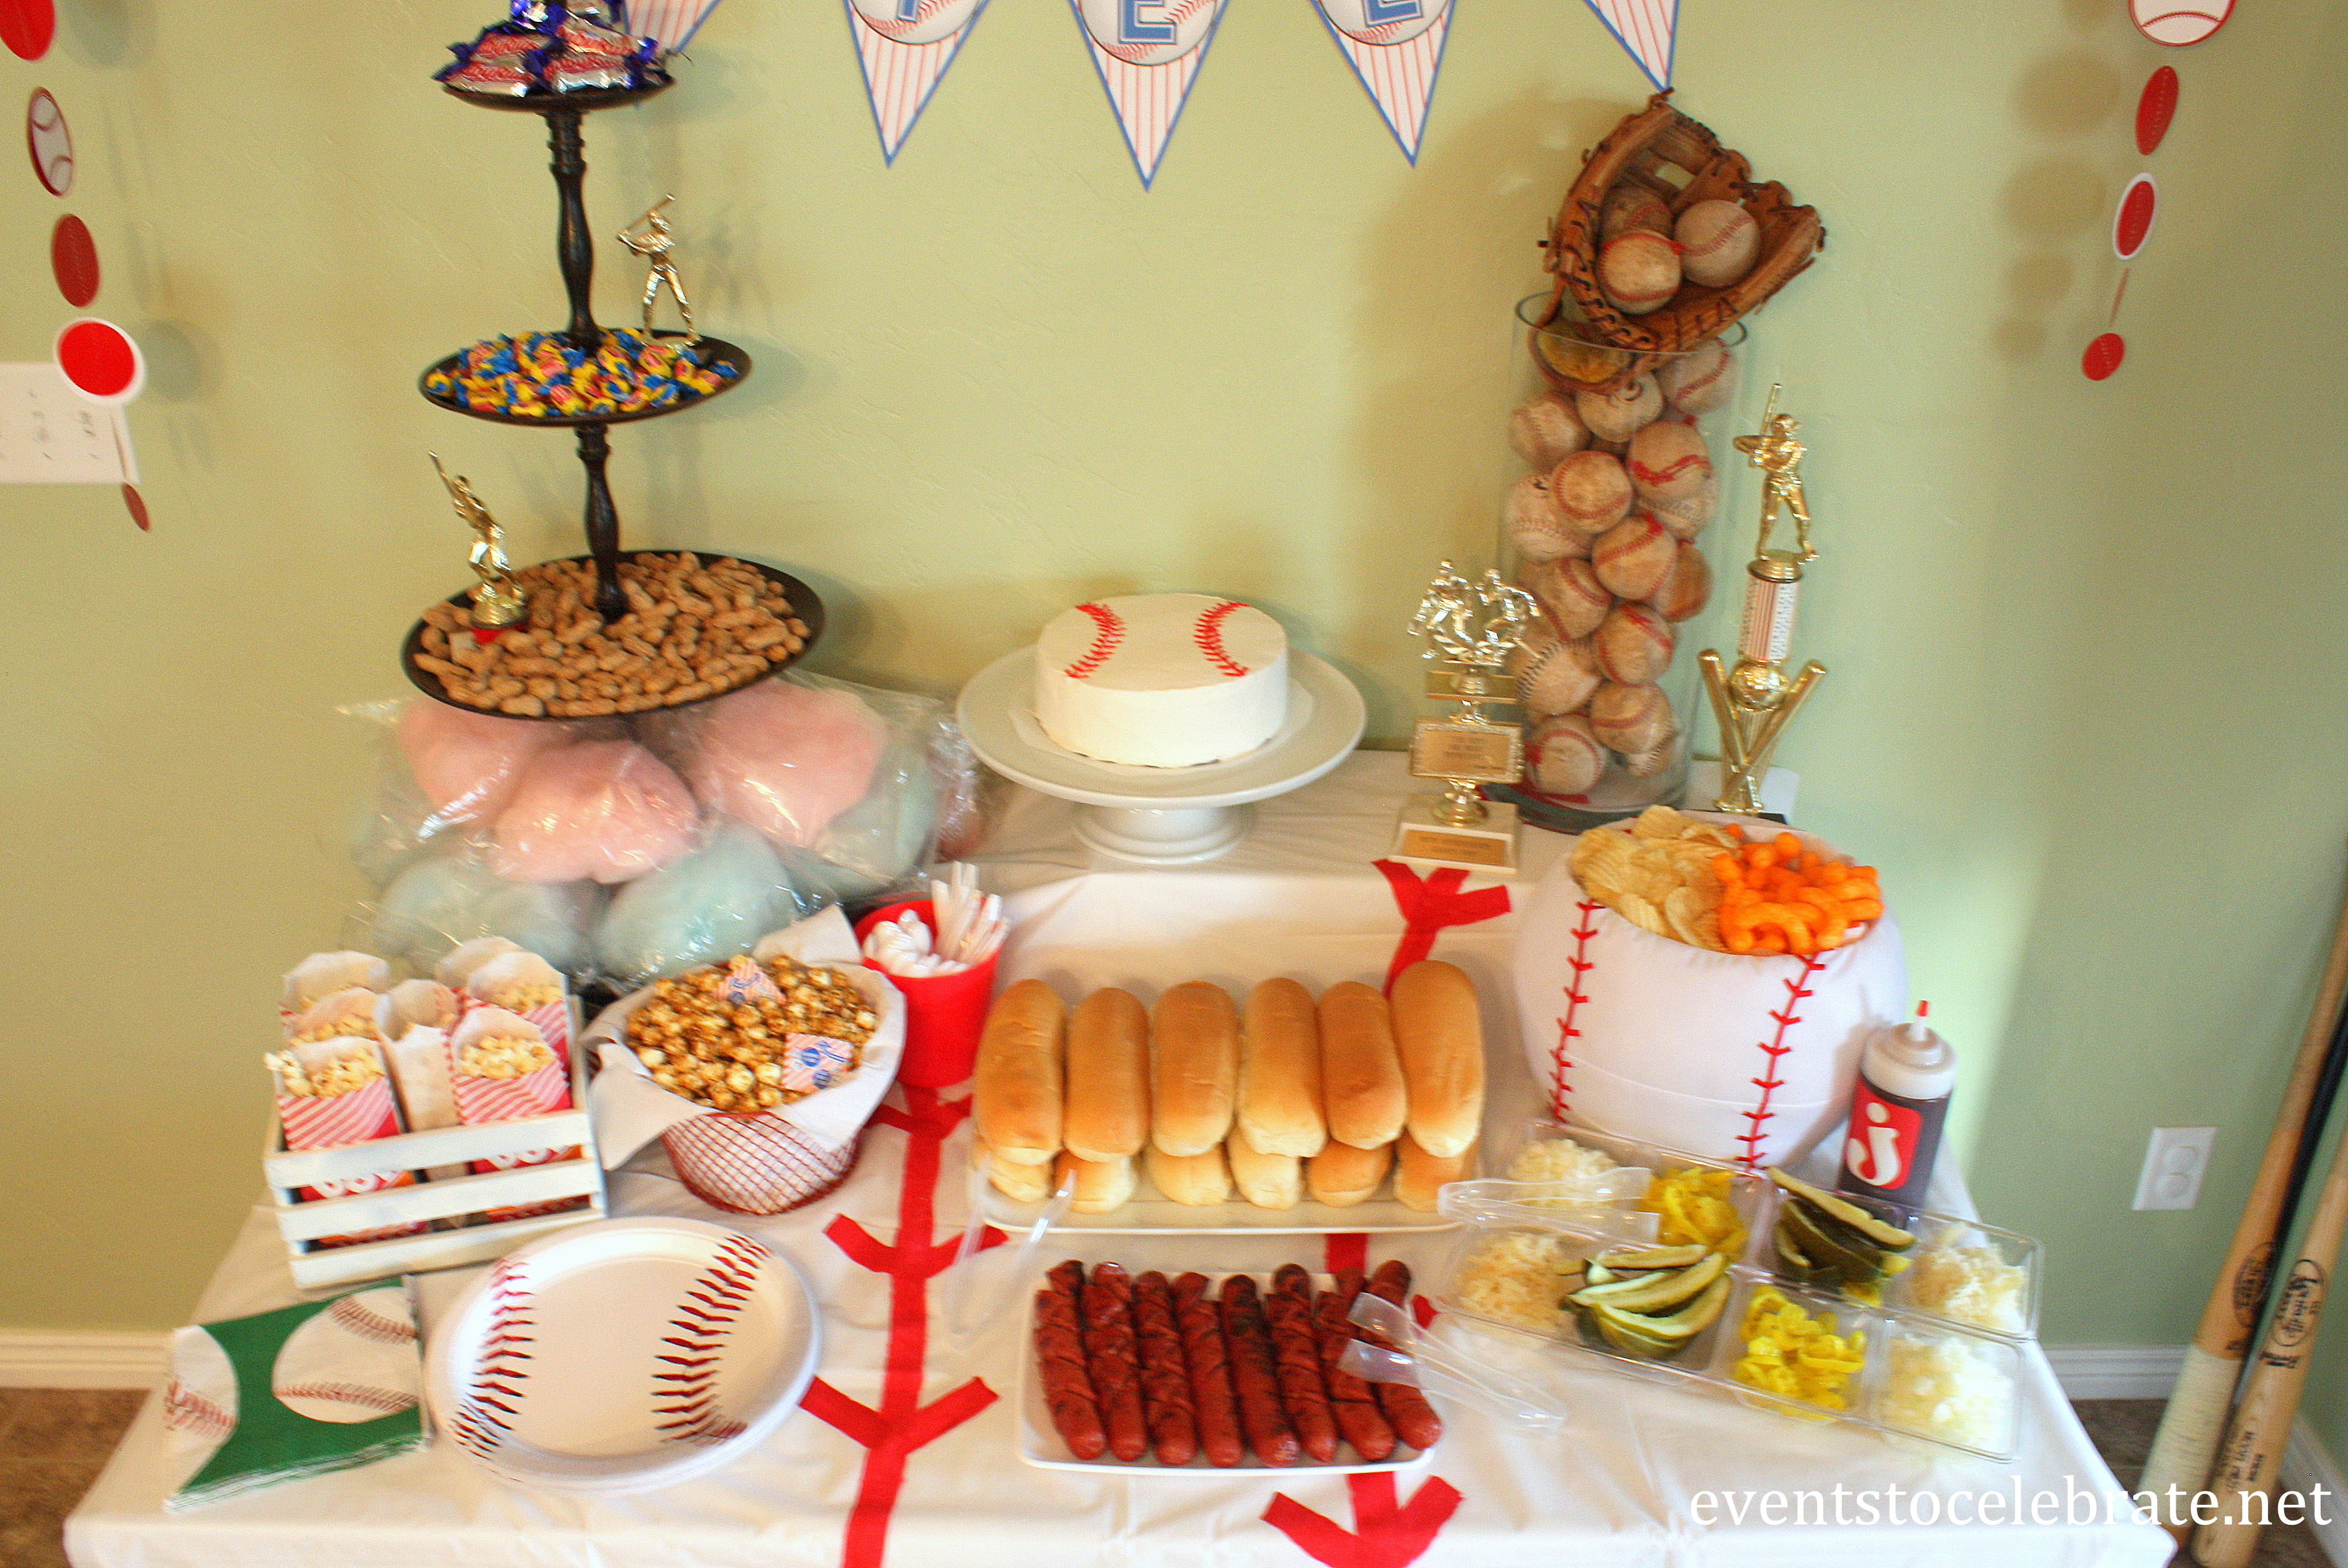 Baseball Birthday Party Ideas  Events To Celebrate. Valentine Ideas For Your Wife. Color Theme Ideas For Toddlers. Table Reception Ideas. Lunch Ideas Adults. Birthday Ideas That Are Cheap. Kitchen Furniture Ideas Minecraft. Garden Ideas On A Budget Ireland. Table Centerpiece Ideas For Home